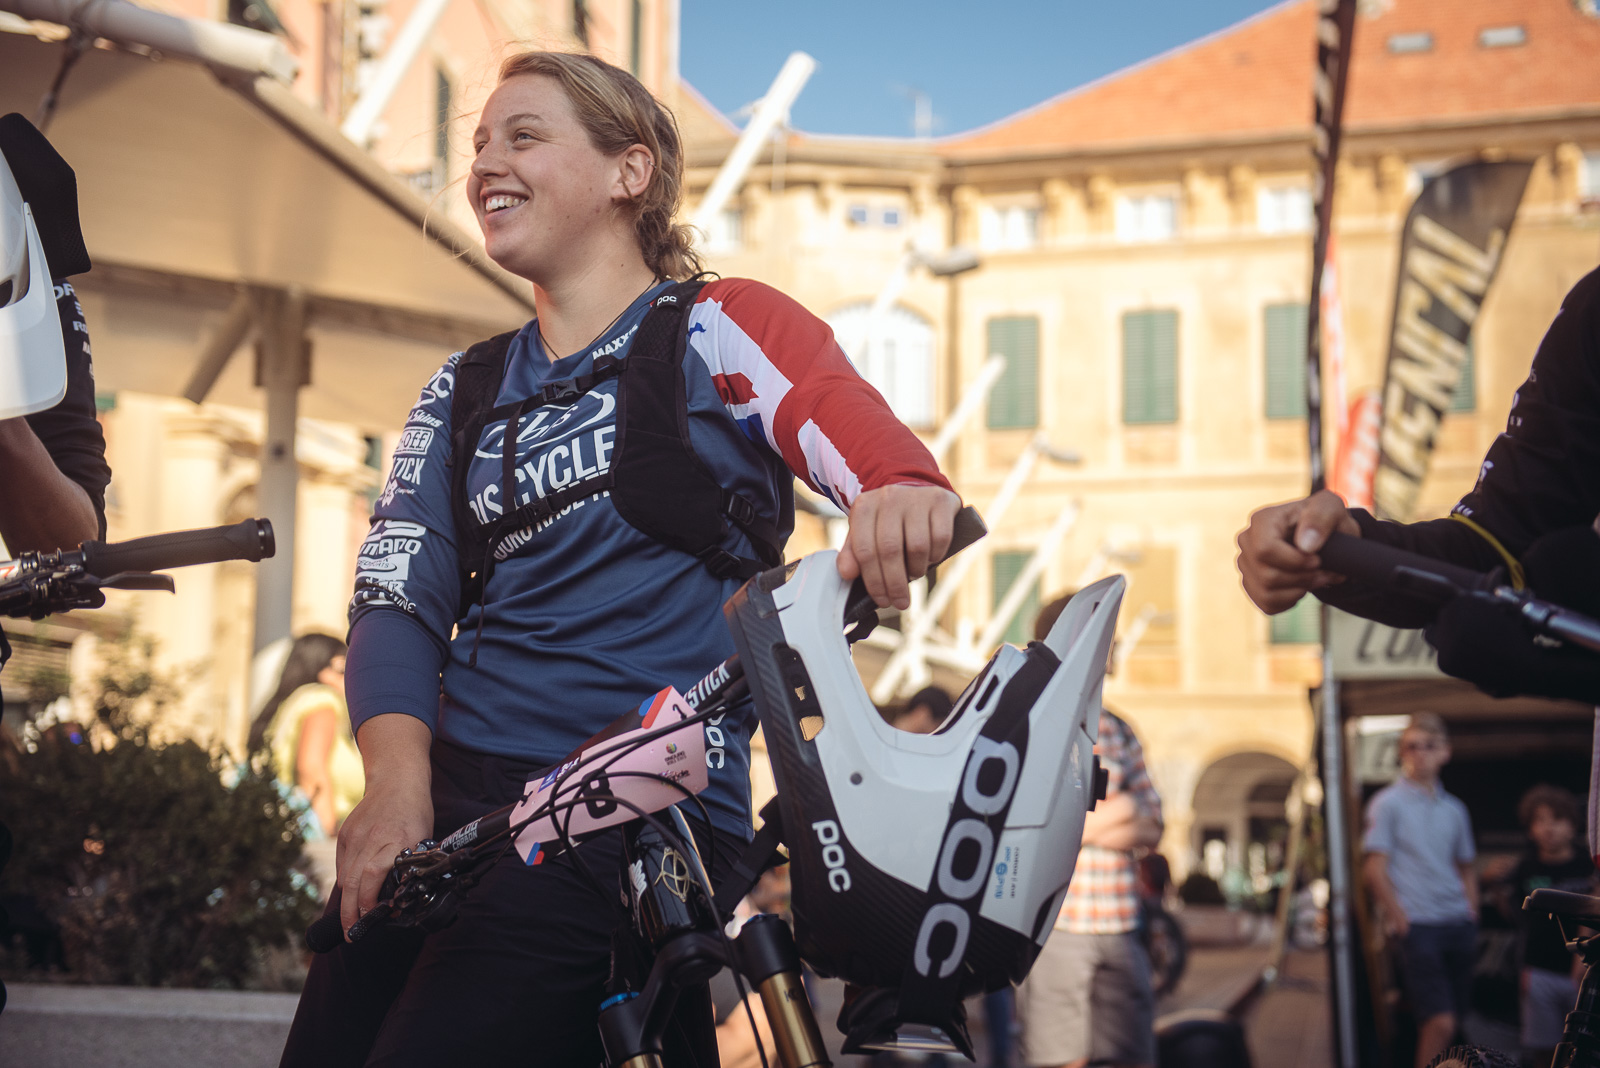 Bex with her national champion jersey in Finale Ligure EWS Sept 2018. Photo Credit: Dave Trumpore